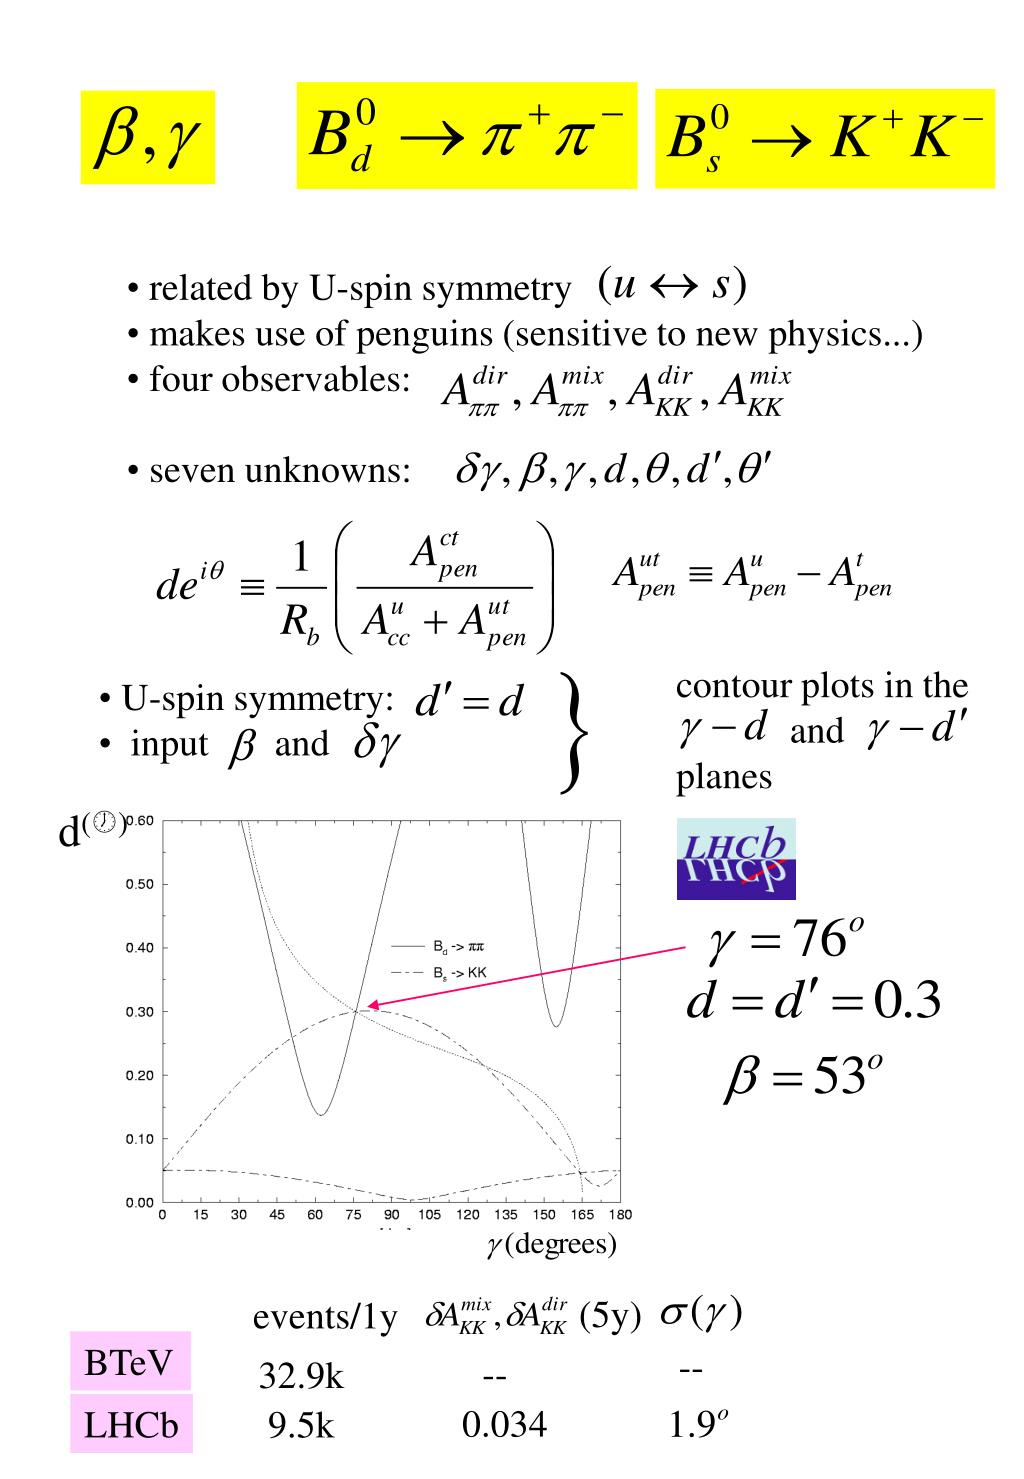 related by U-spin symmetry